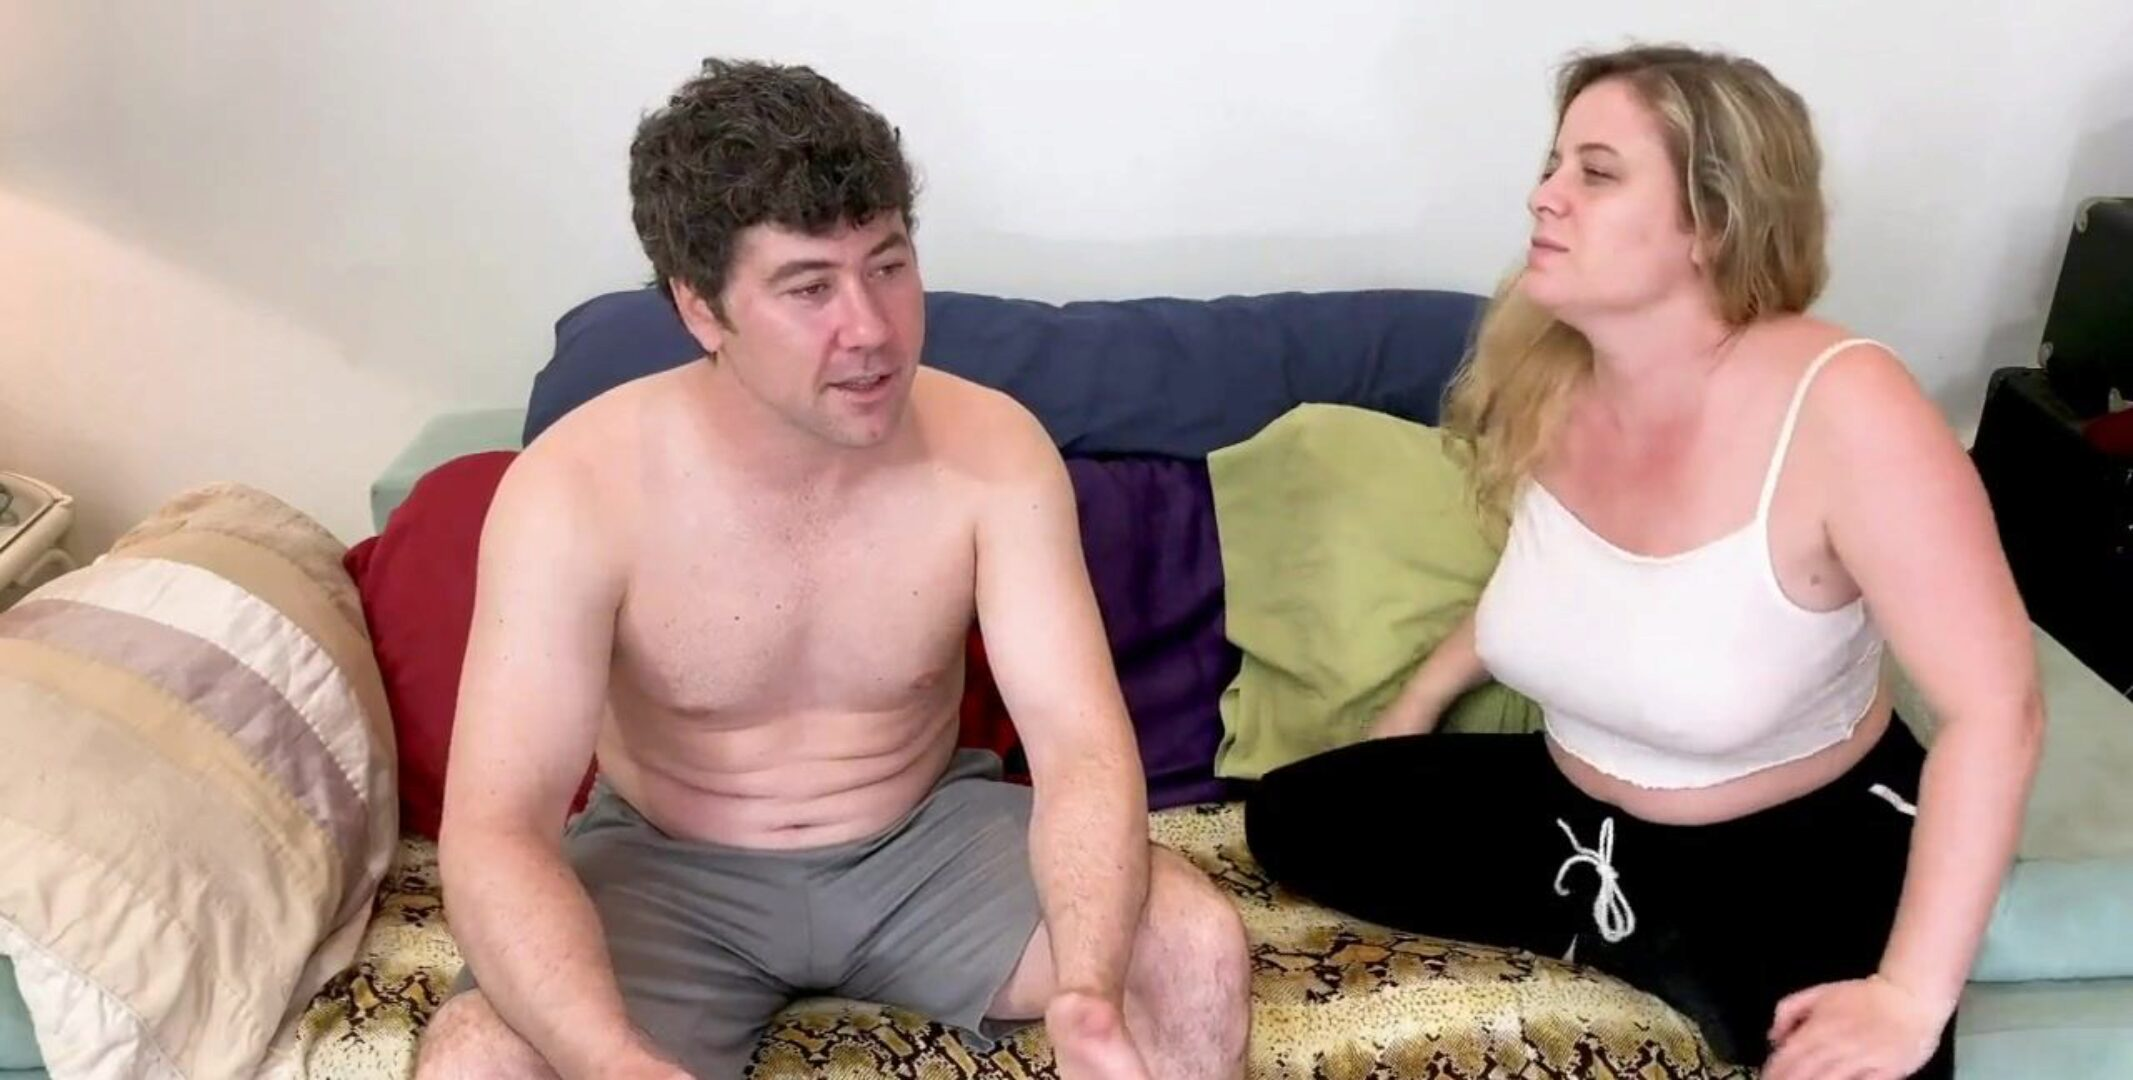 Stepsister trains brother-in-law how to acquire to home base Stepsister lets stepbrother use her bod to learn about fuck-a-thon